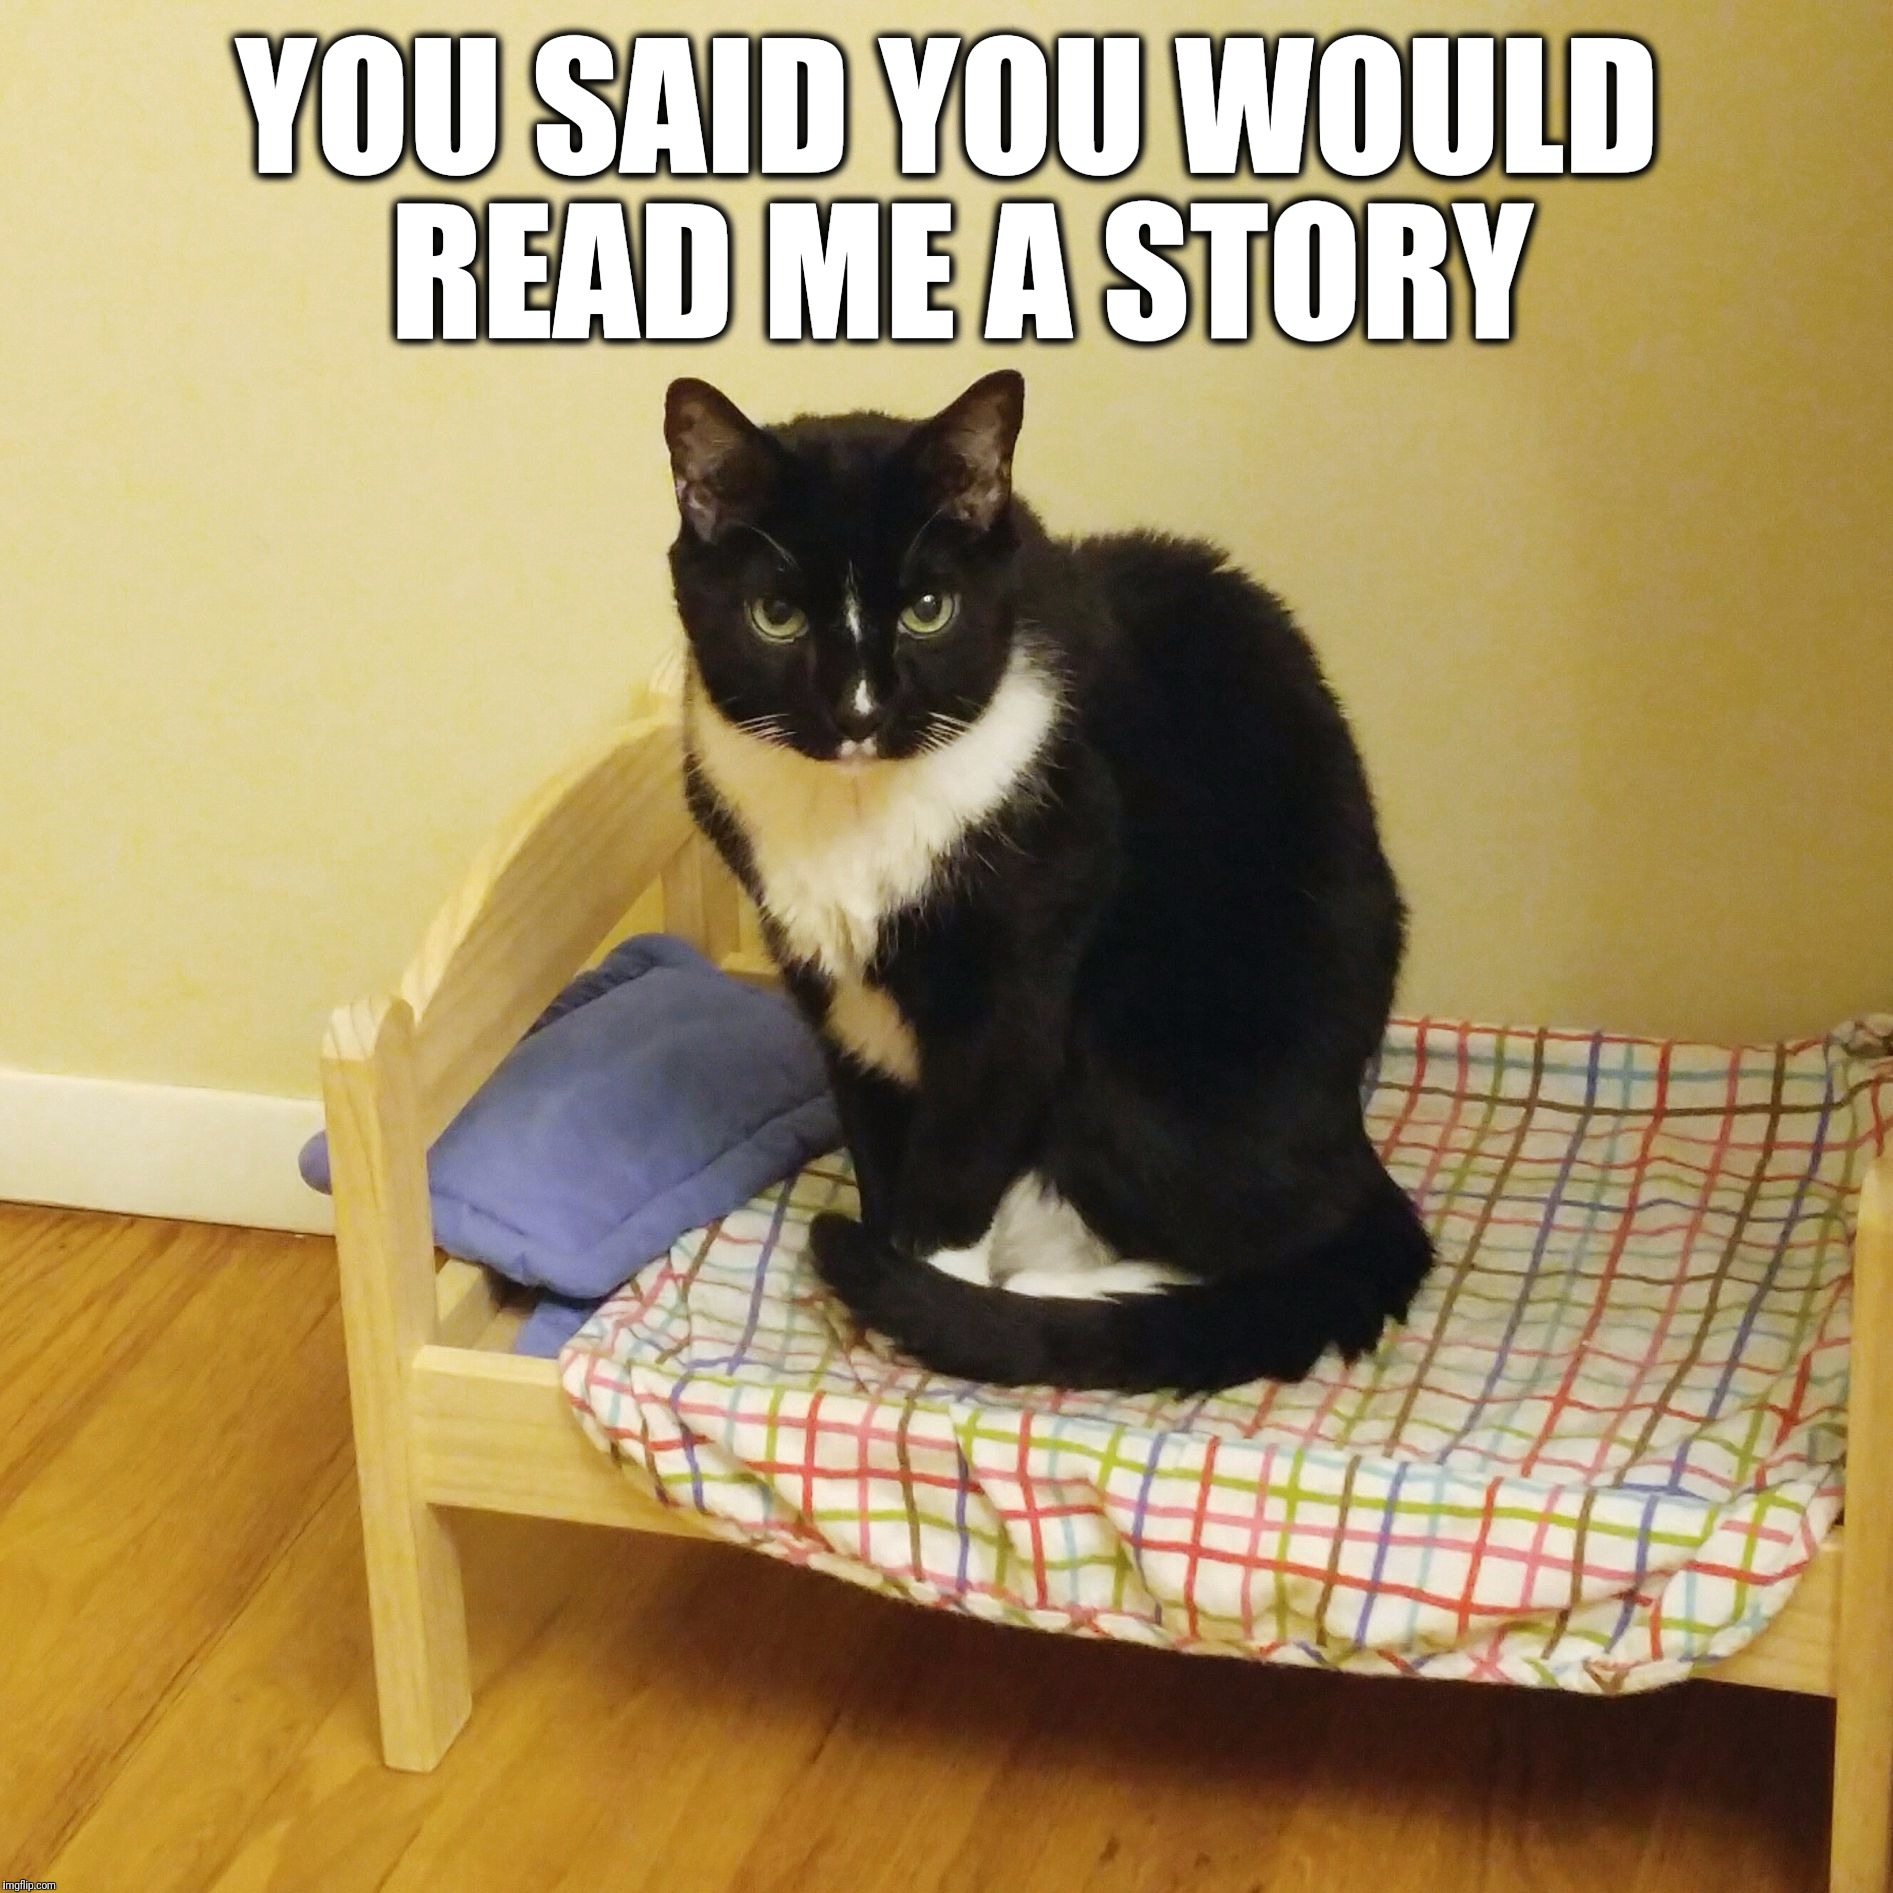 You said you would read me a story | YOU SAID YOU WOULD READ ME A STORY | image tagged in bert the cat,cats,bedtime,read me a story,funny,cute | made w/ Imgflip meme maker